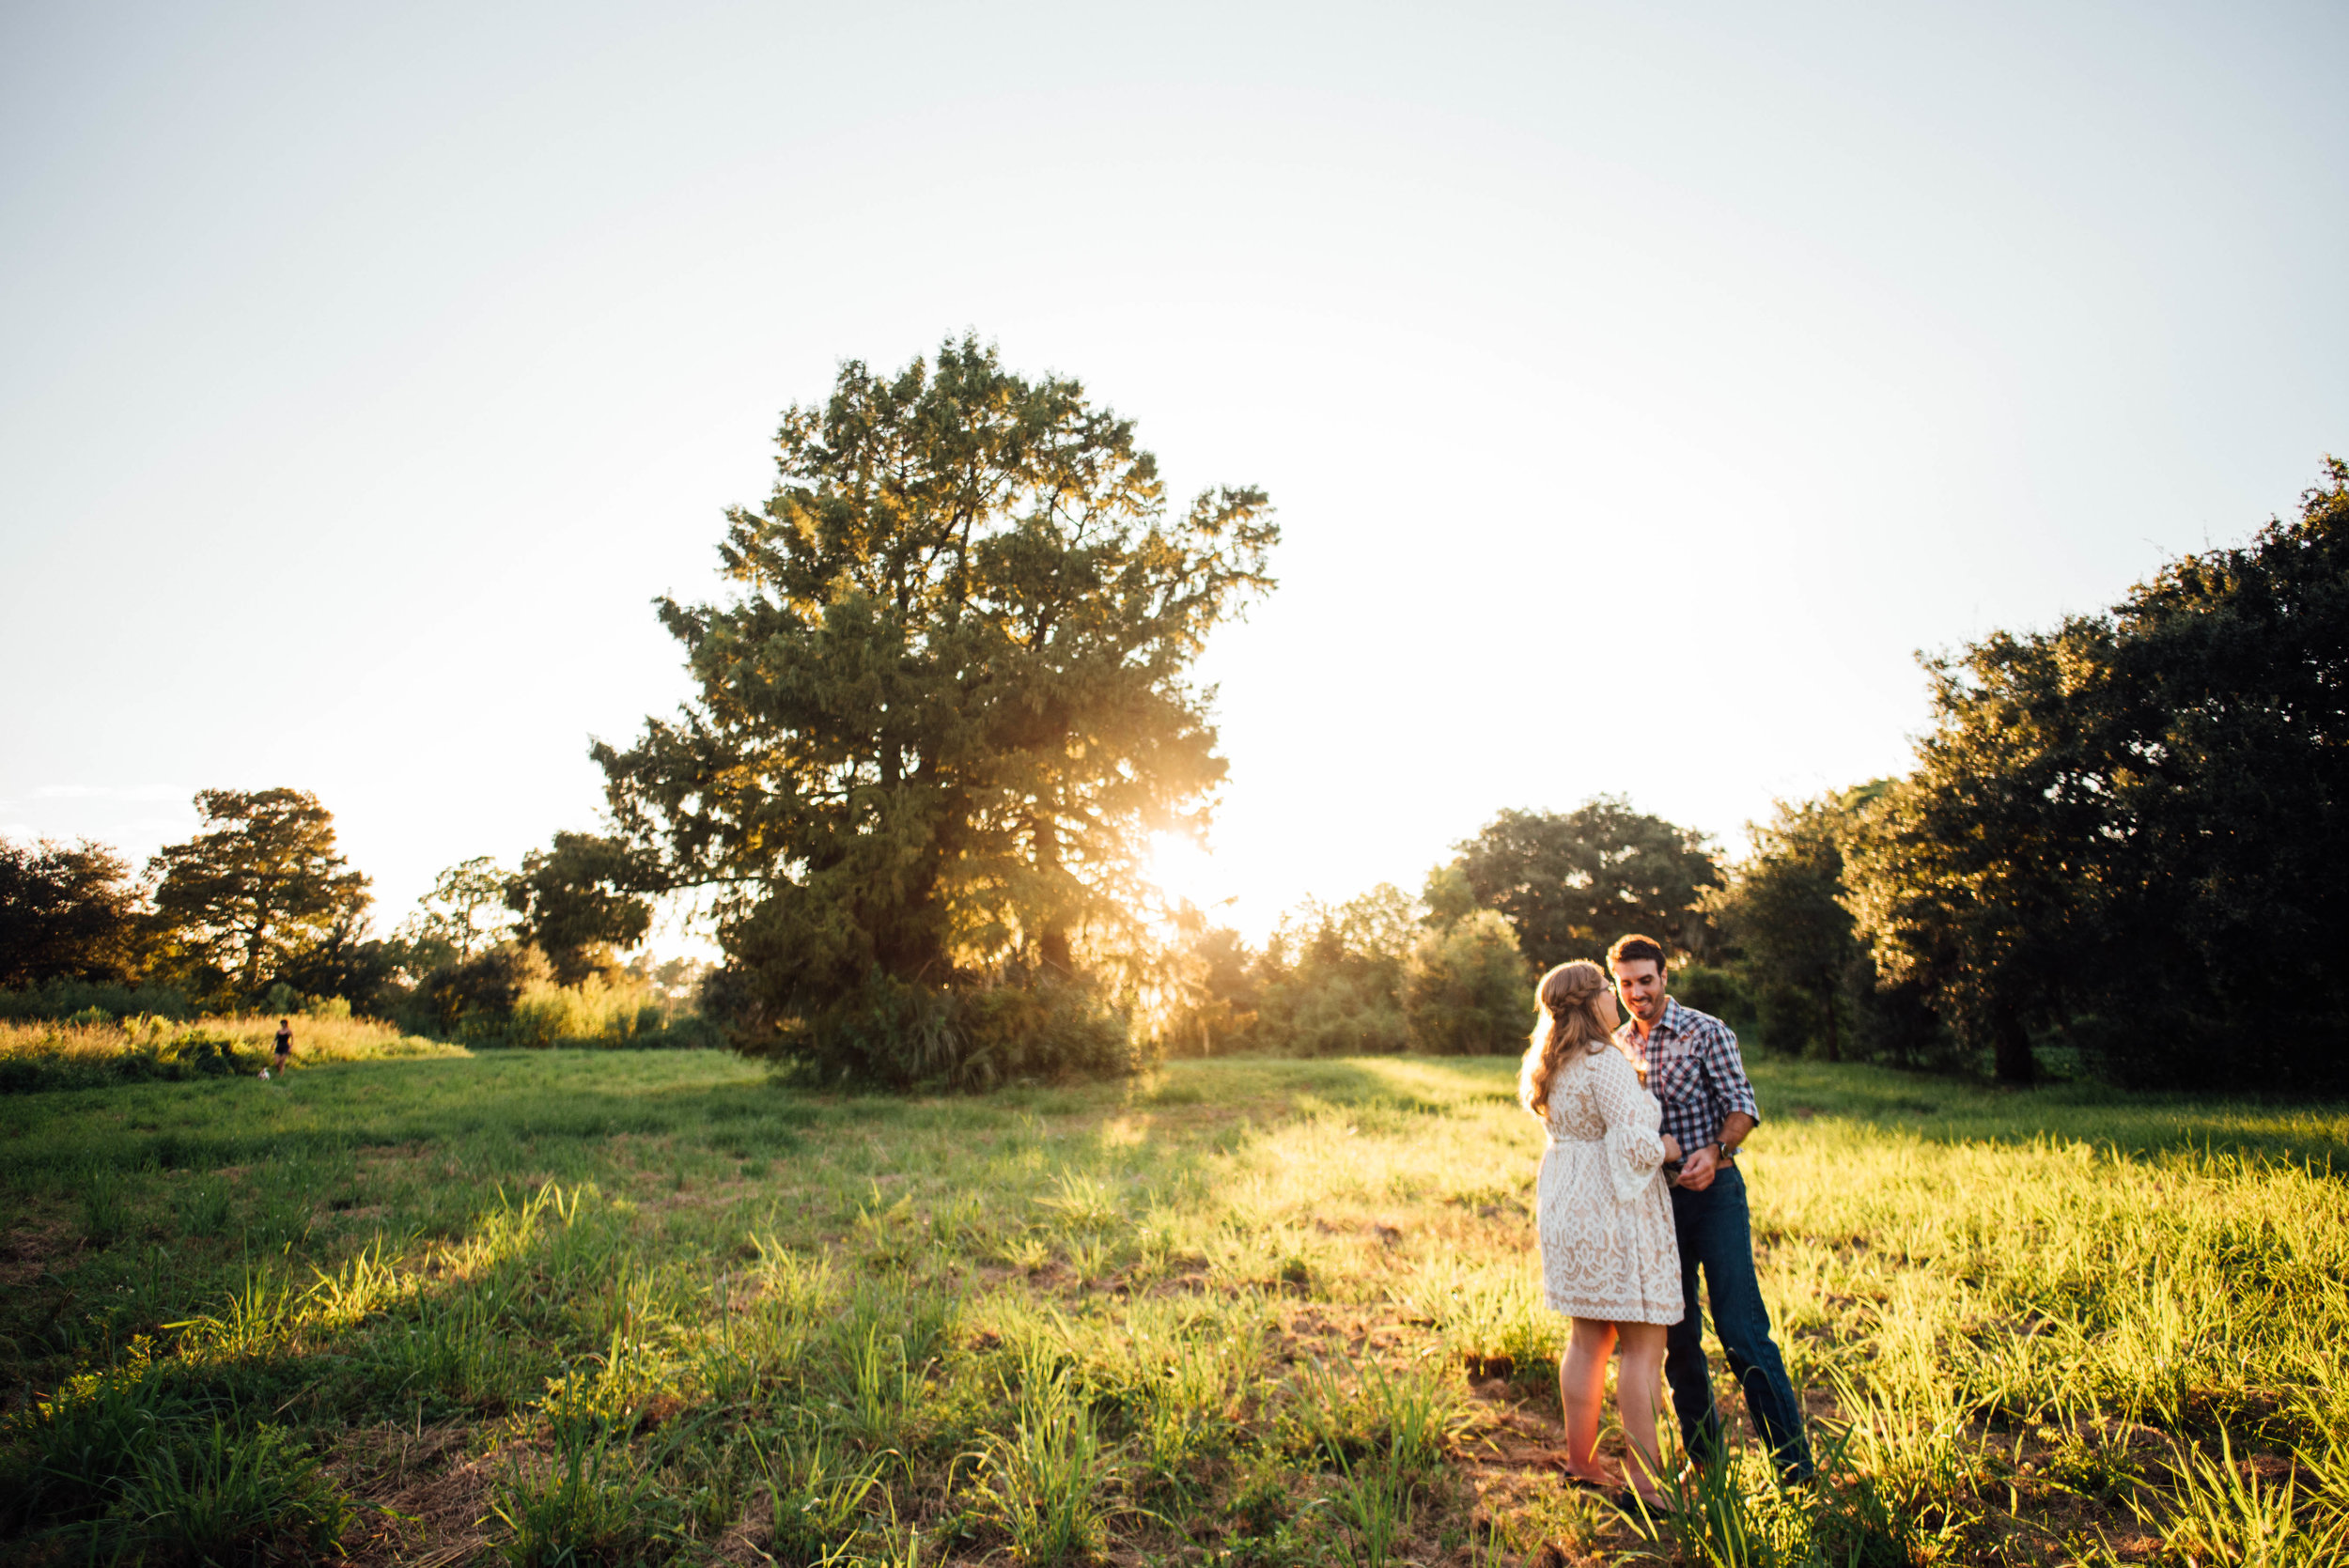 Jordan + Kent_French-Quarter-New-Orleans-City-Park-Engagement-Photos_Gabby Chapin_Print_0131.jpg